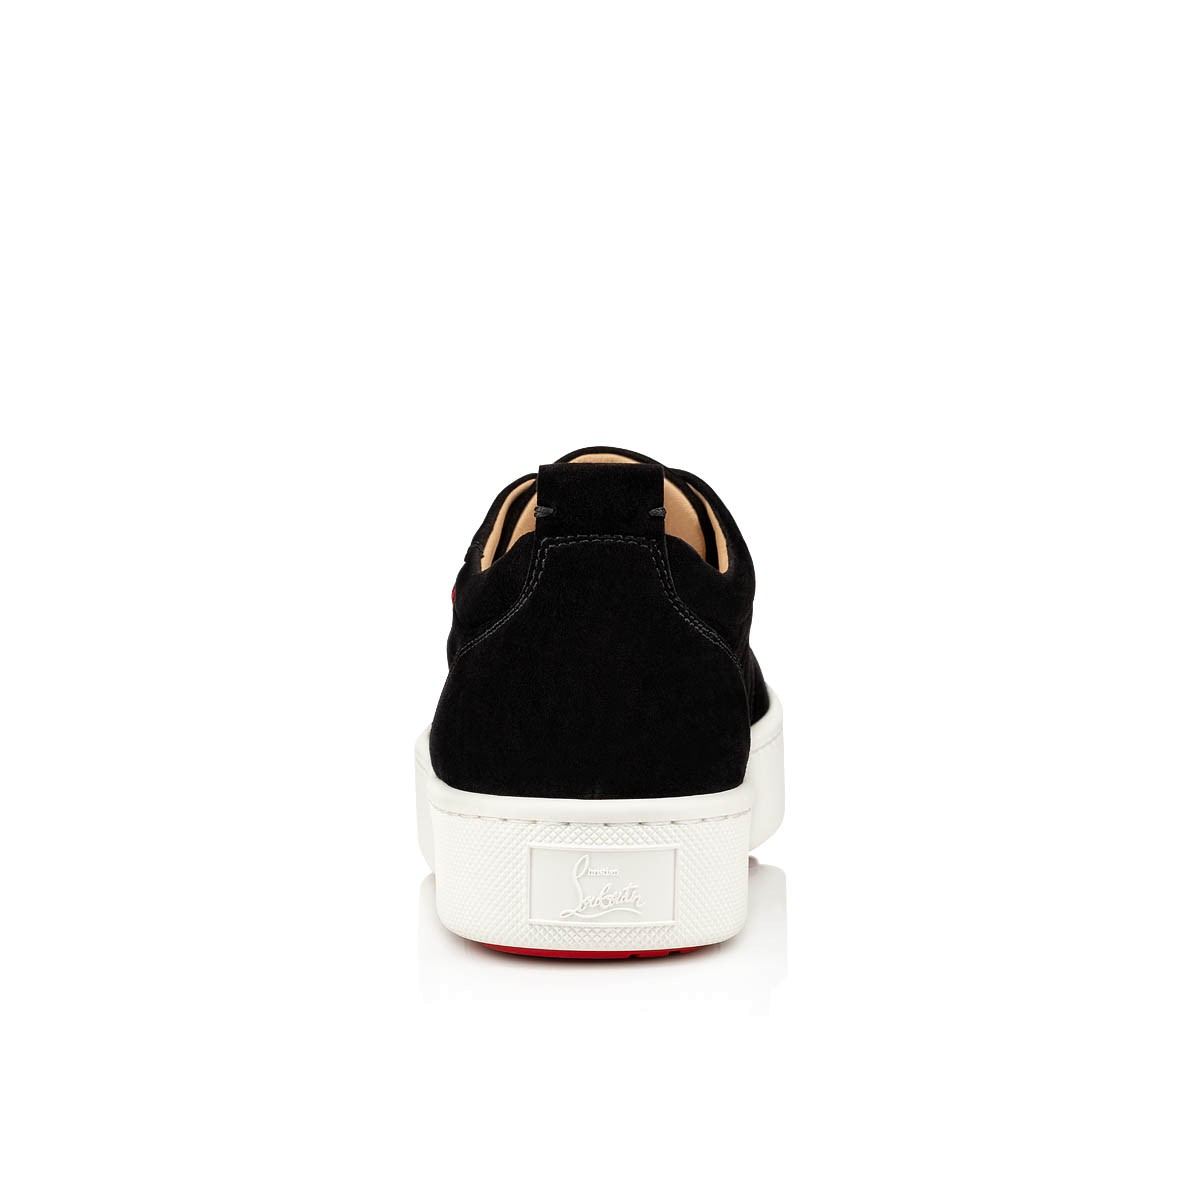 Men Shoes - Happyrui Spikes - Christian Louboutin